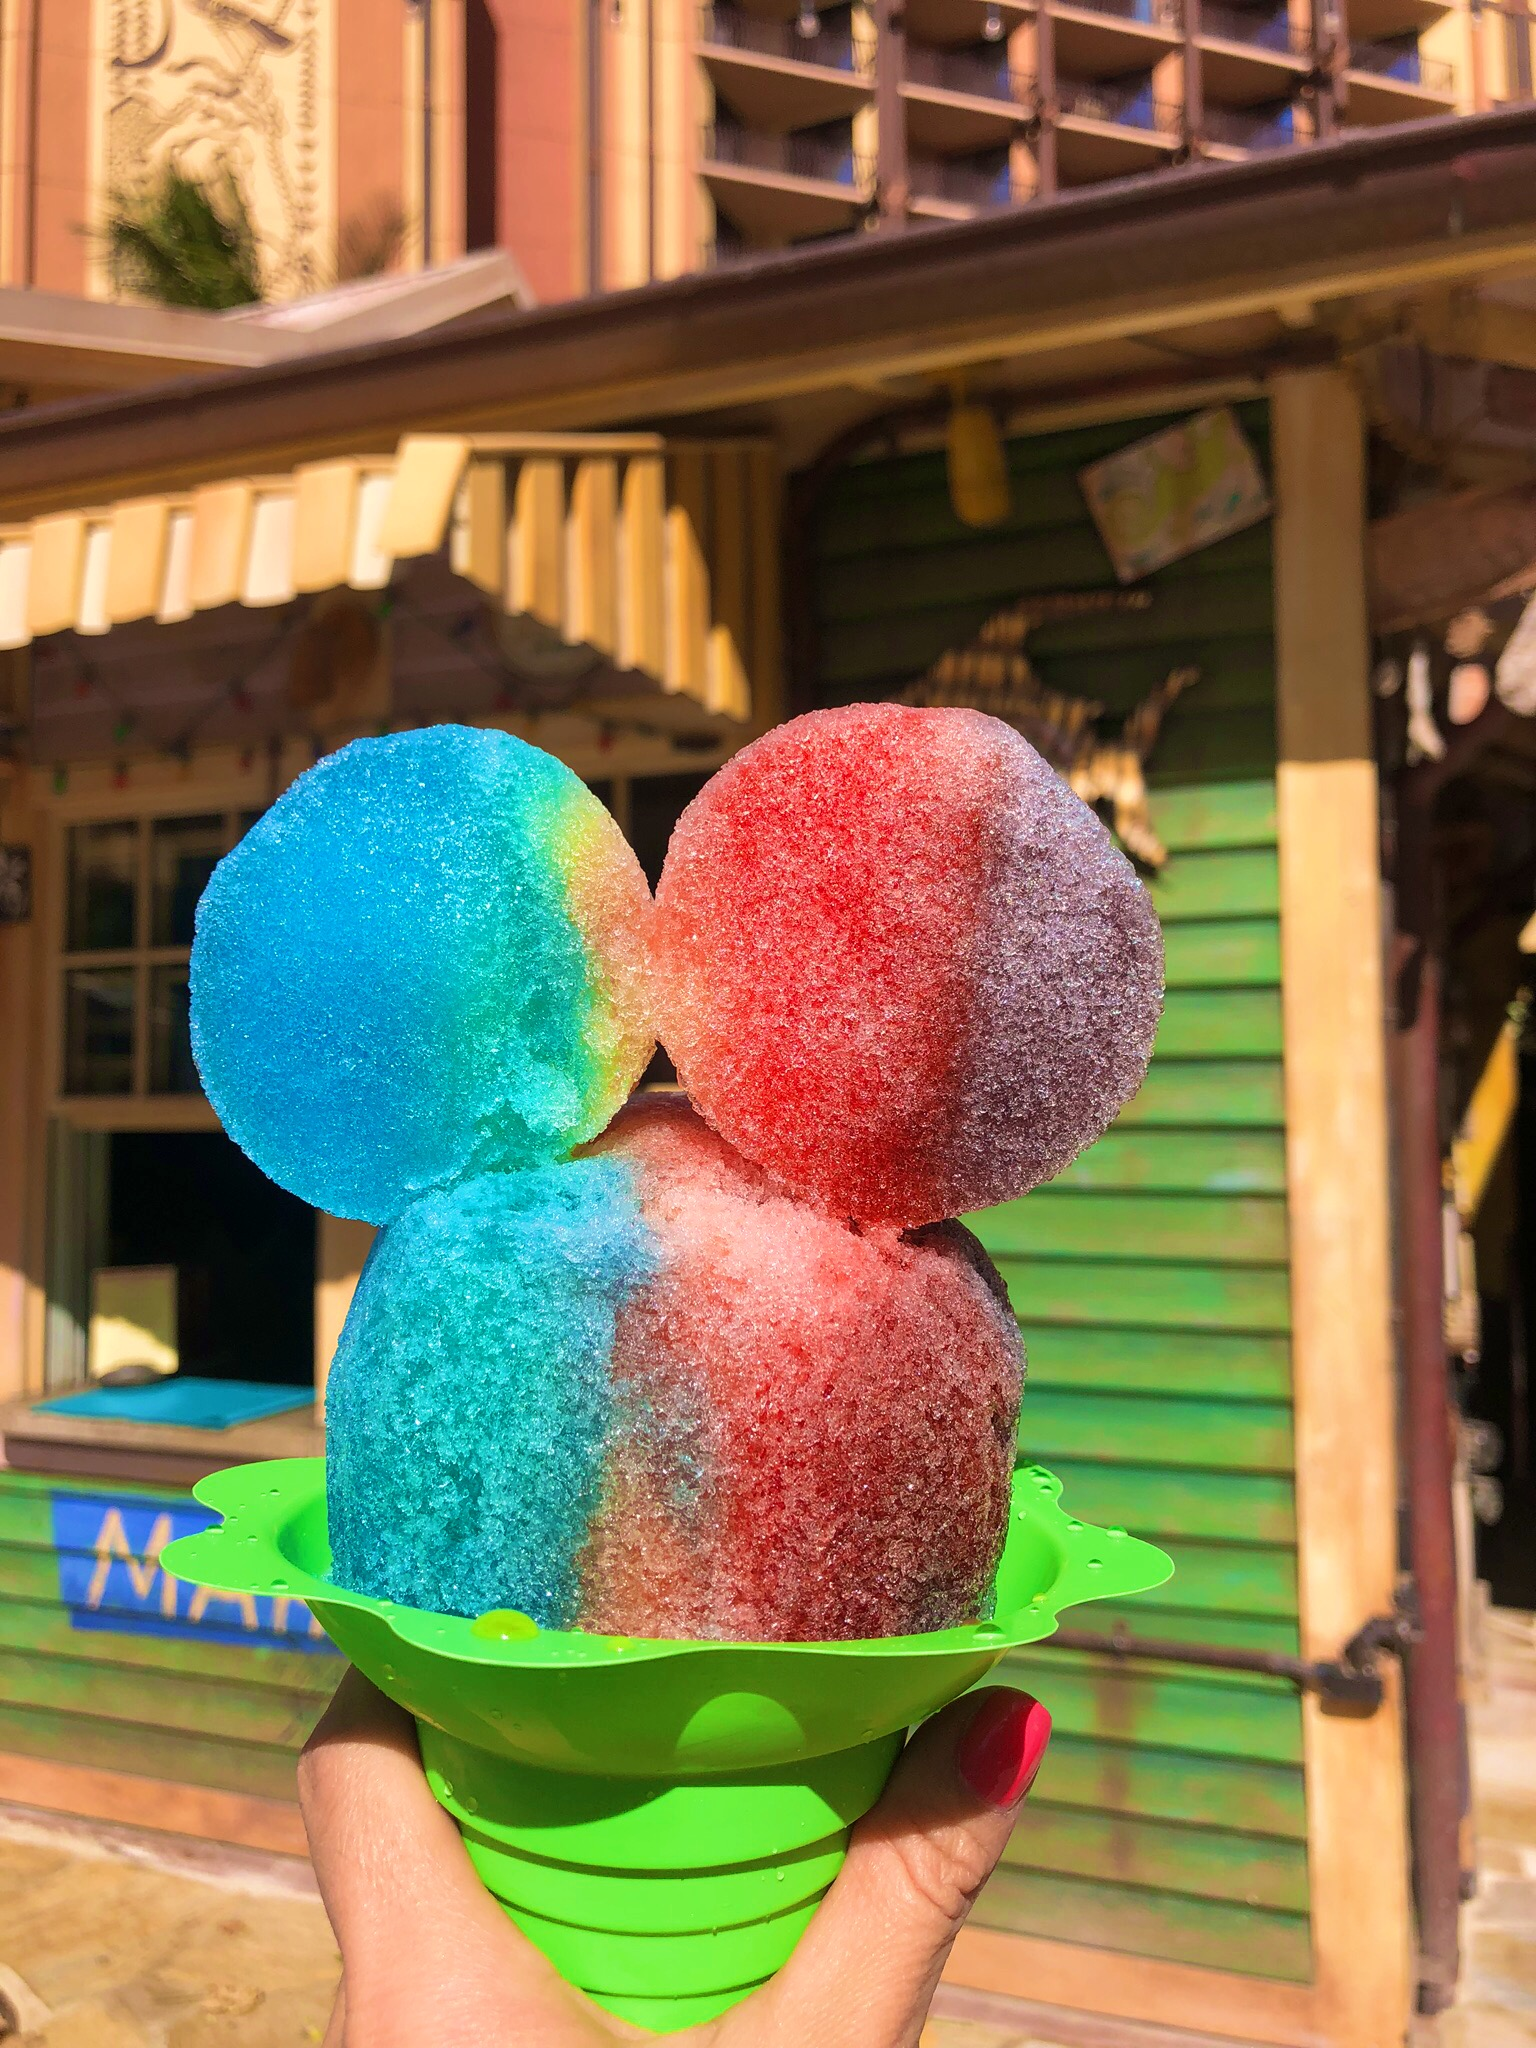 Mickey-Snowcone-Disney's Aulani Most Instagram-Worthy Spots-more affordable than you think-deals-family travel-Hawaii